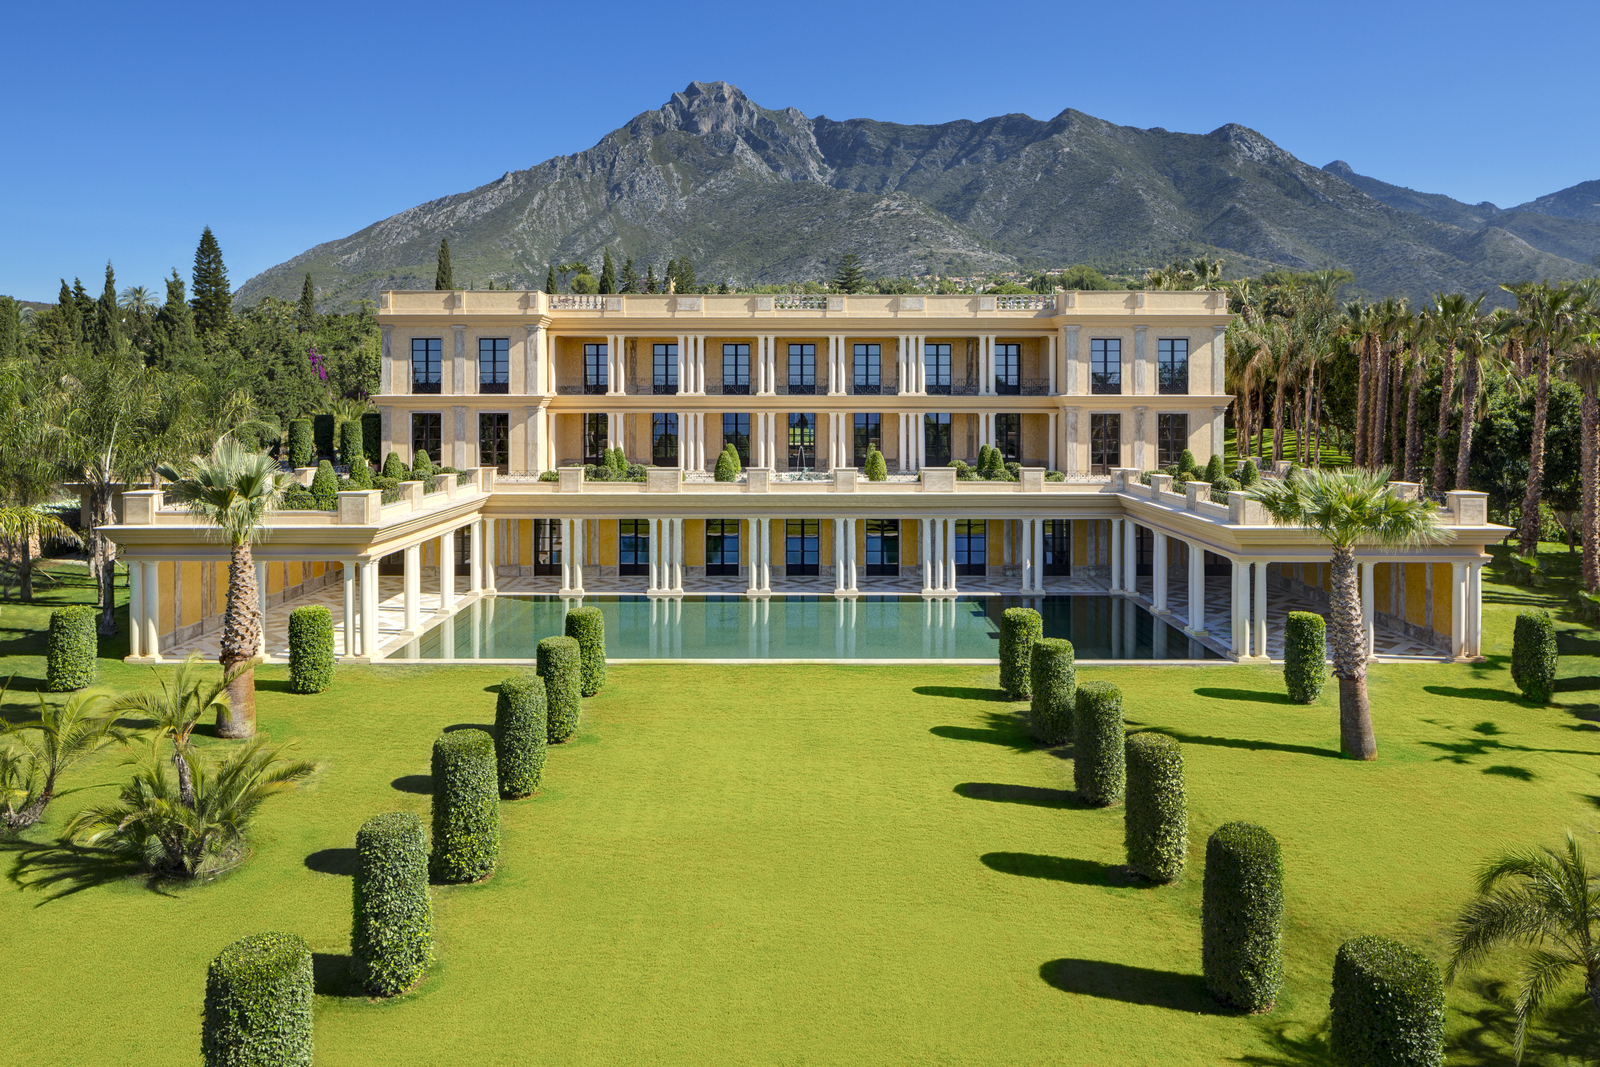 Foreign investment in Marbella and Spain's Luxury Villas on the rise